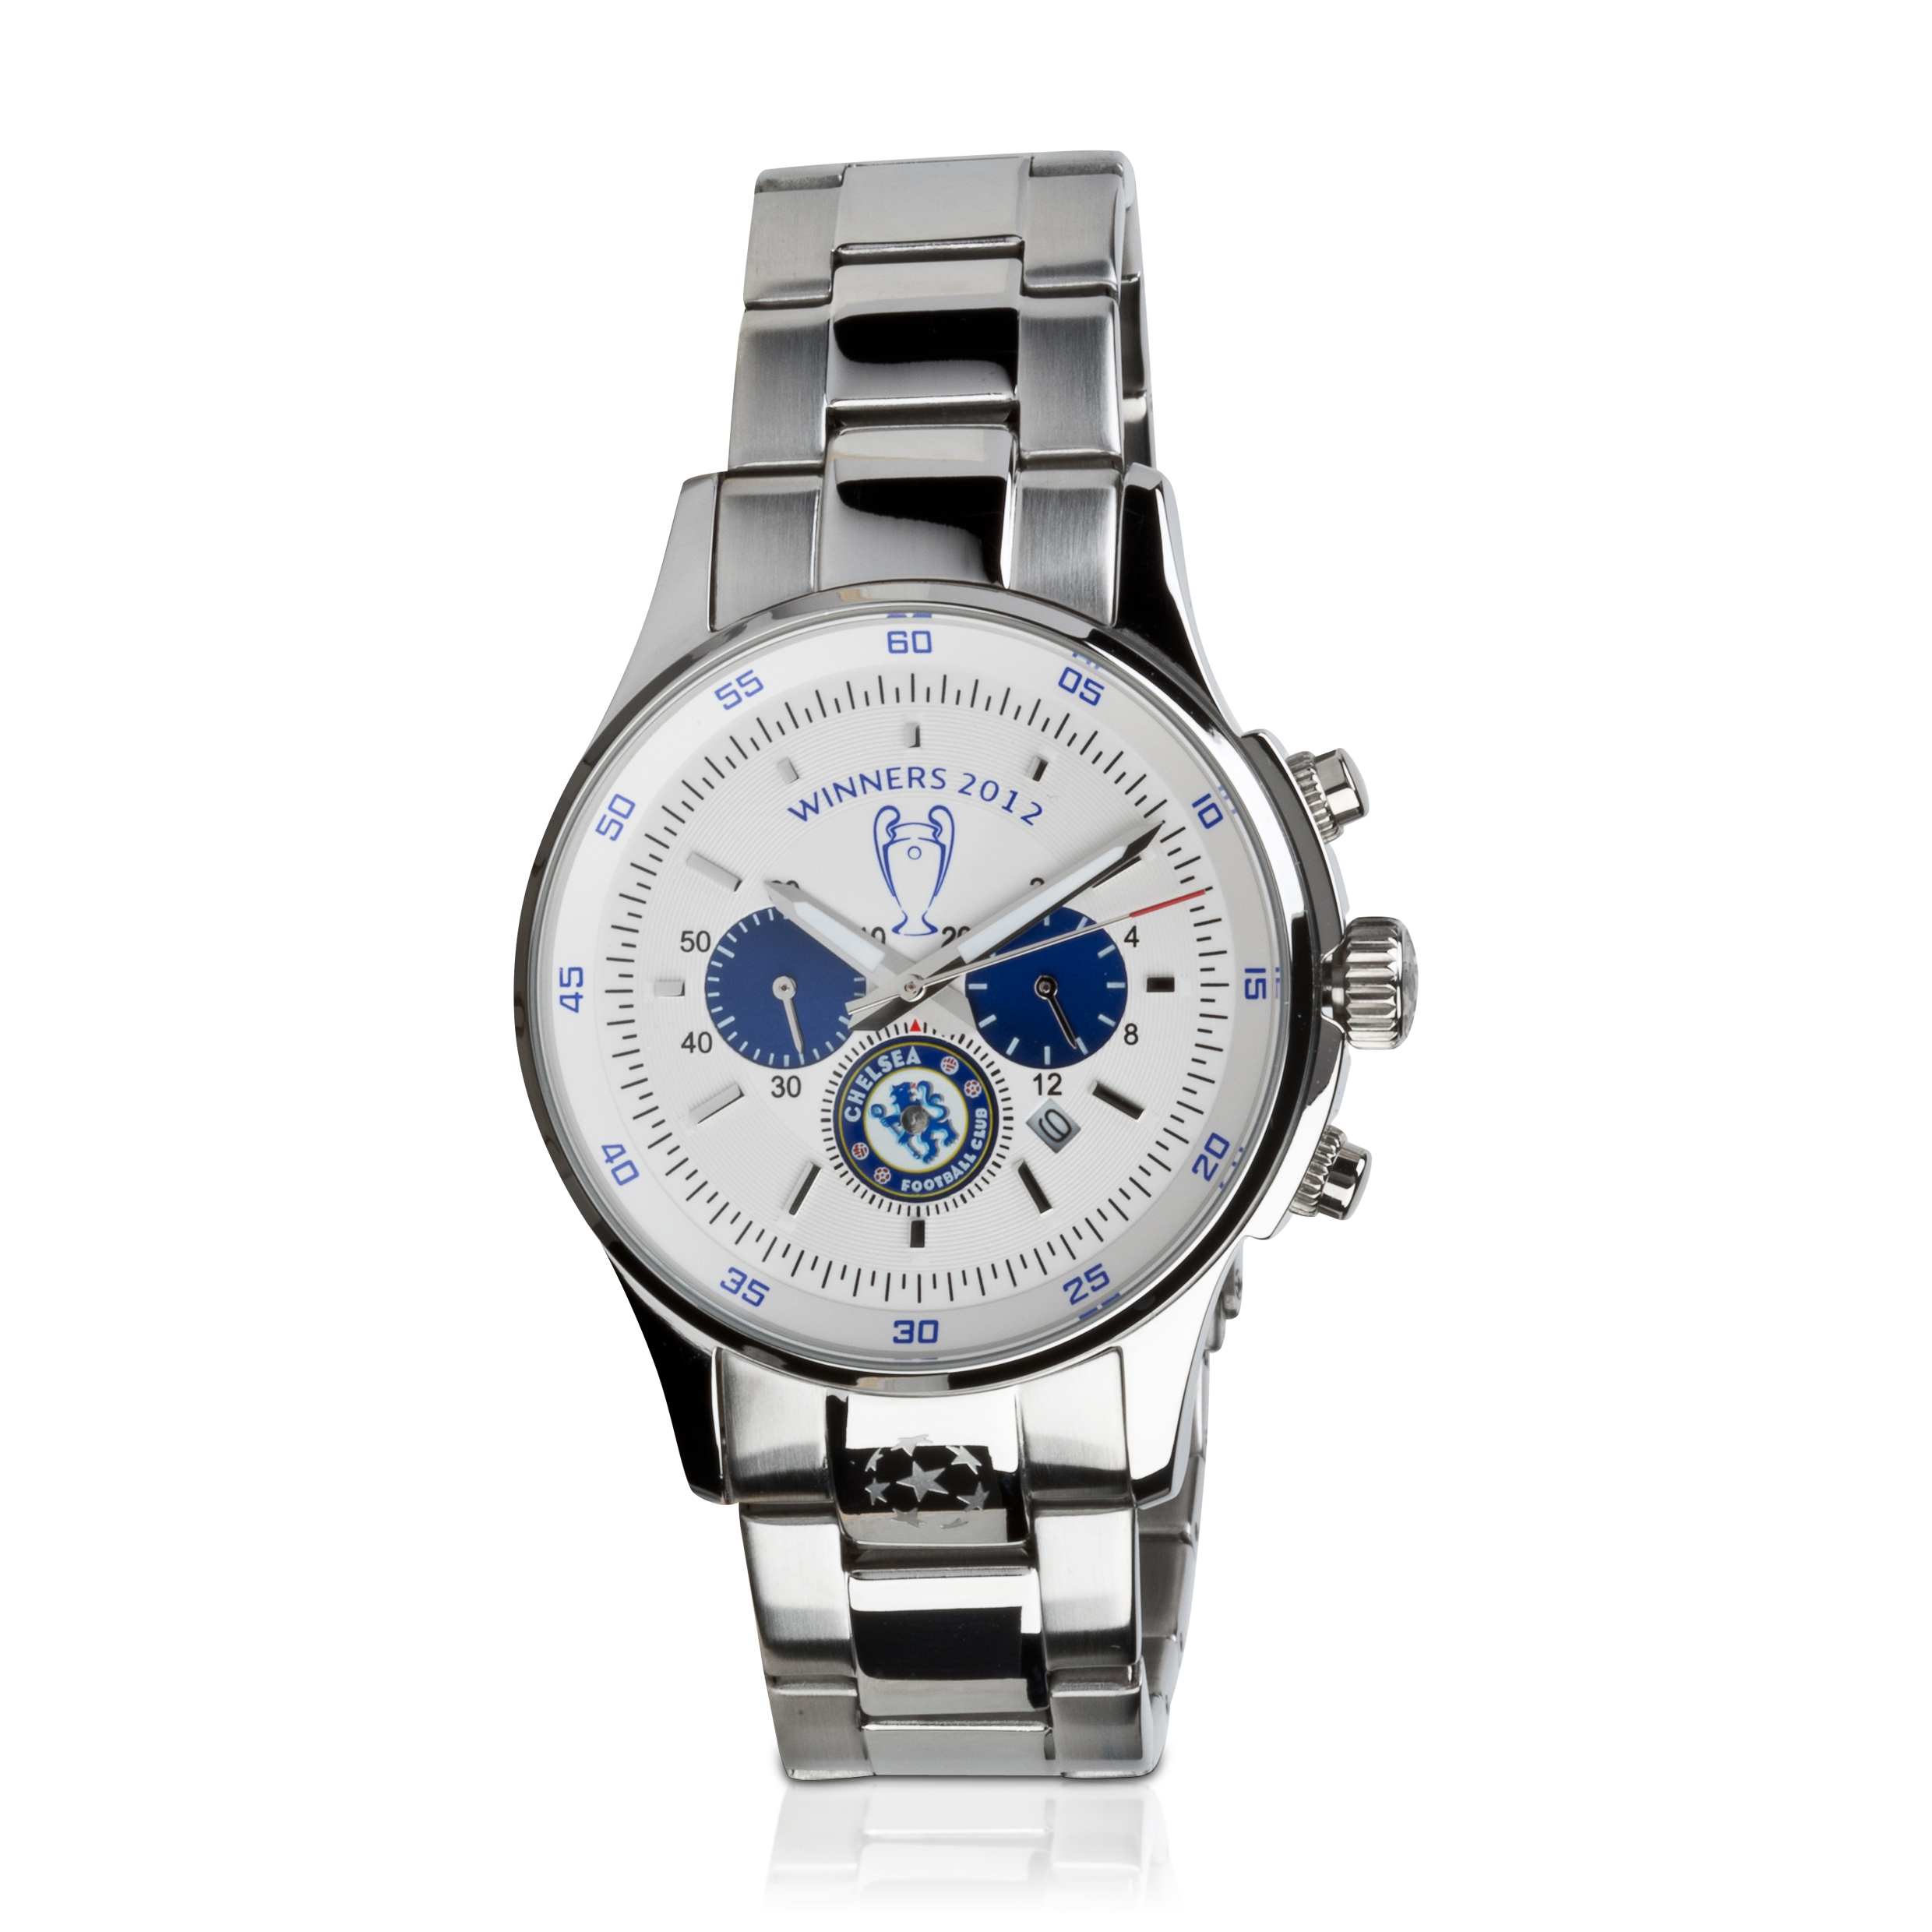 Chelsea Past Winners Champions Of Europe 2012 JACQUES LEMANS Bracelet Watch